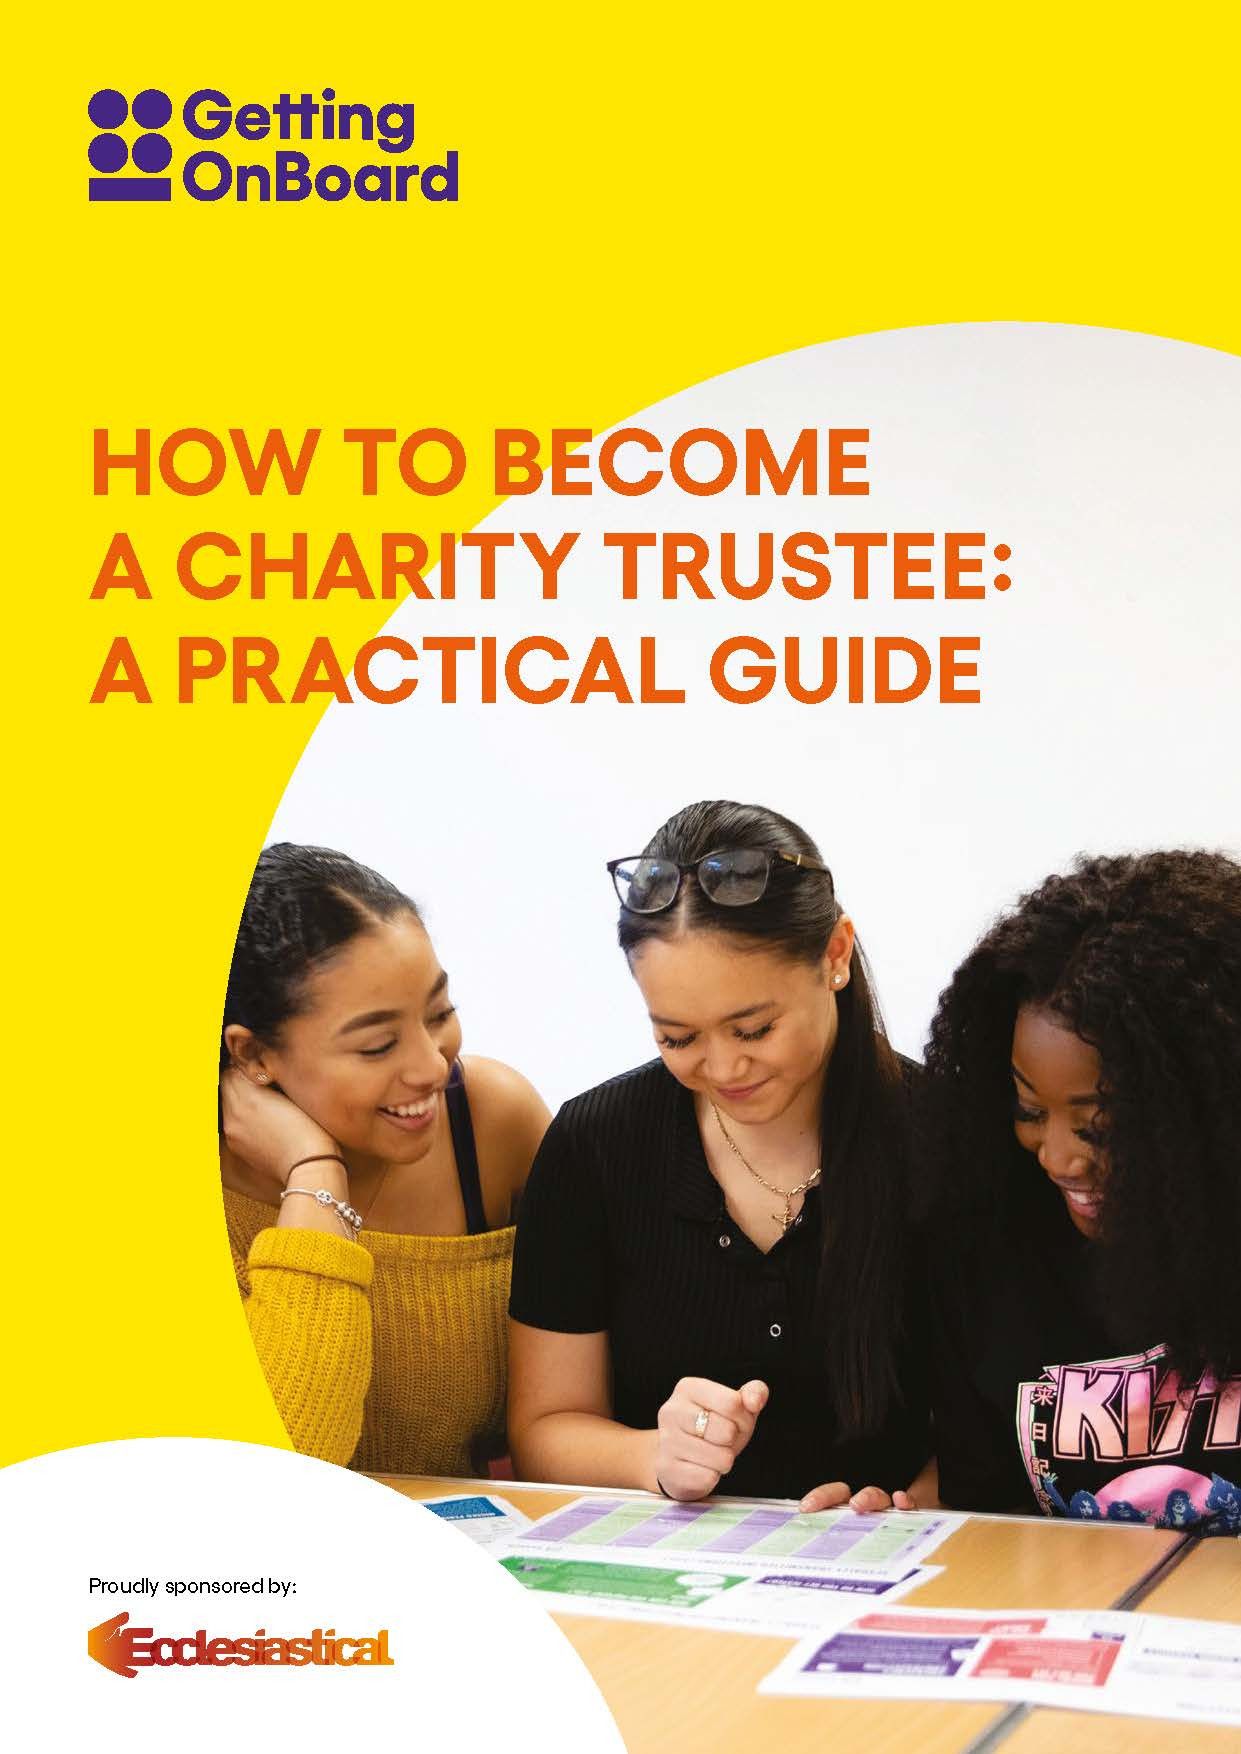 How to become a charity trustee: A practical guide